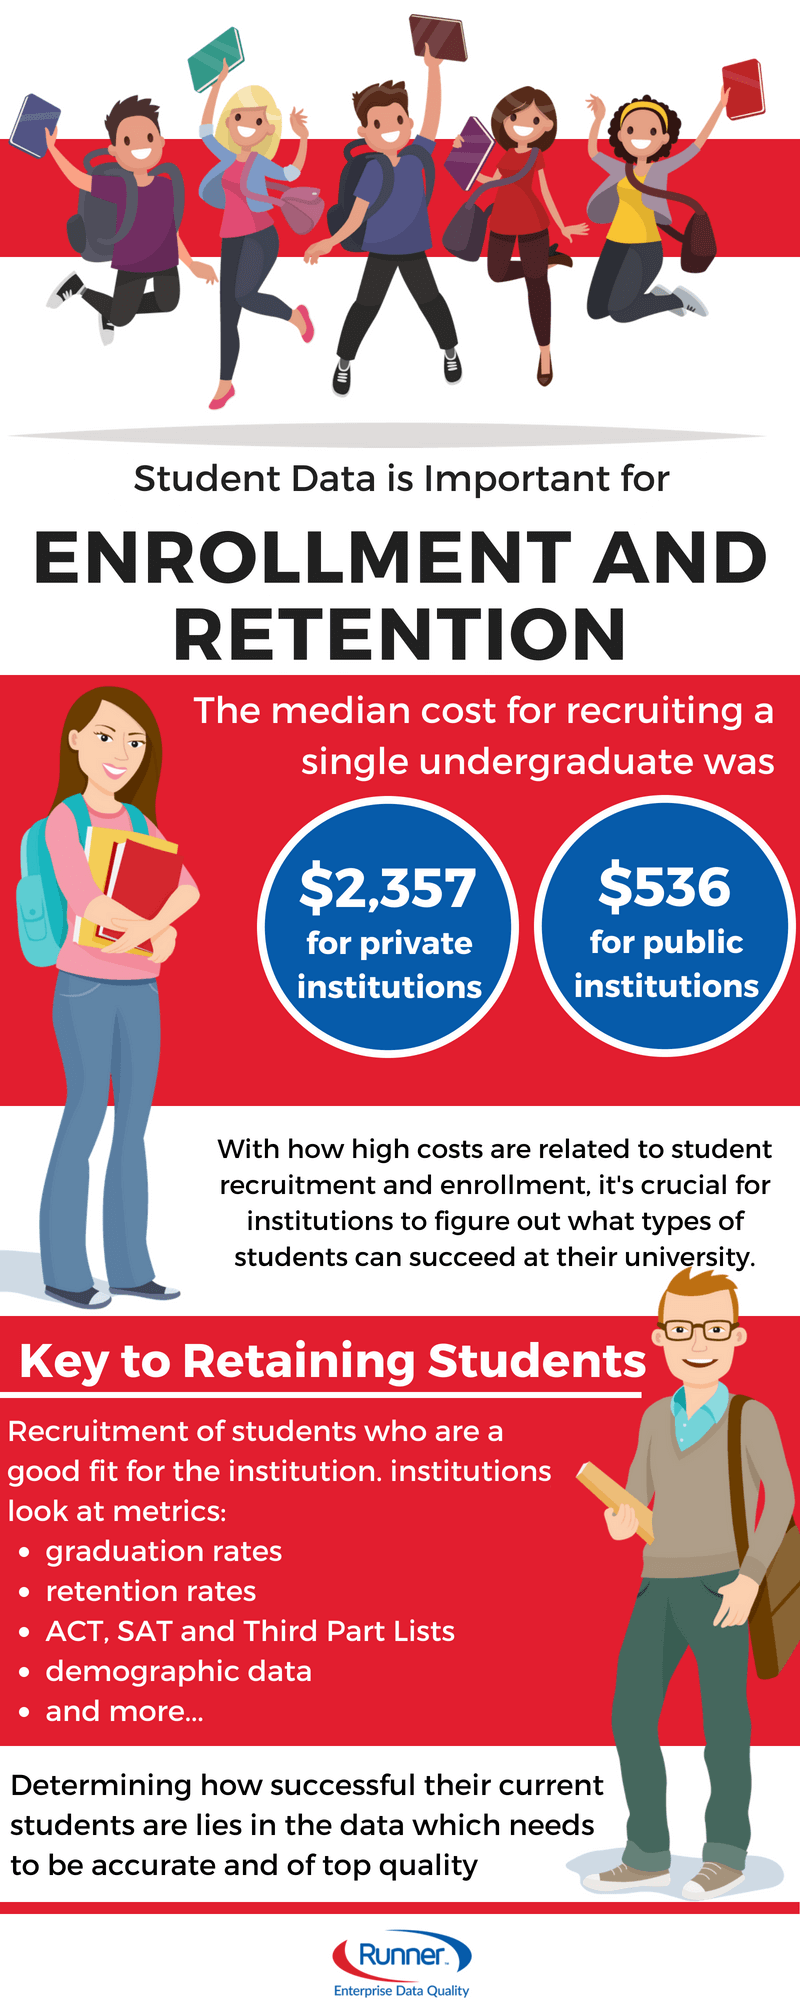 Our student data management integrations offer universities and colleges a great way to keep track of their prospective students. The quality data provided by RunnerEDQ's Clean_Student for prospects includes ACT, SAT and Third Party List validations, fraud detection with RBDI, as well as other useful features.